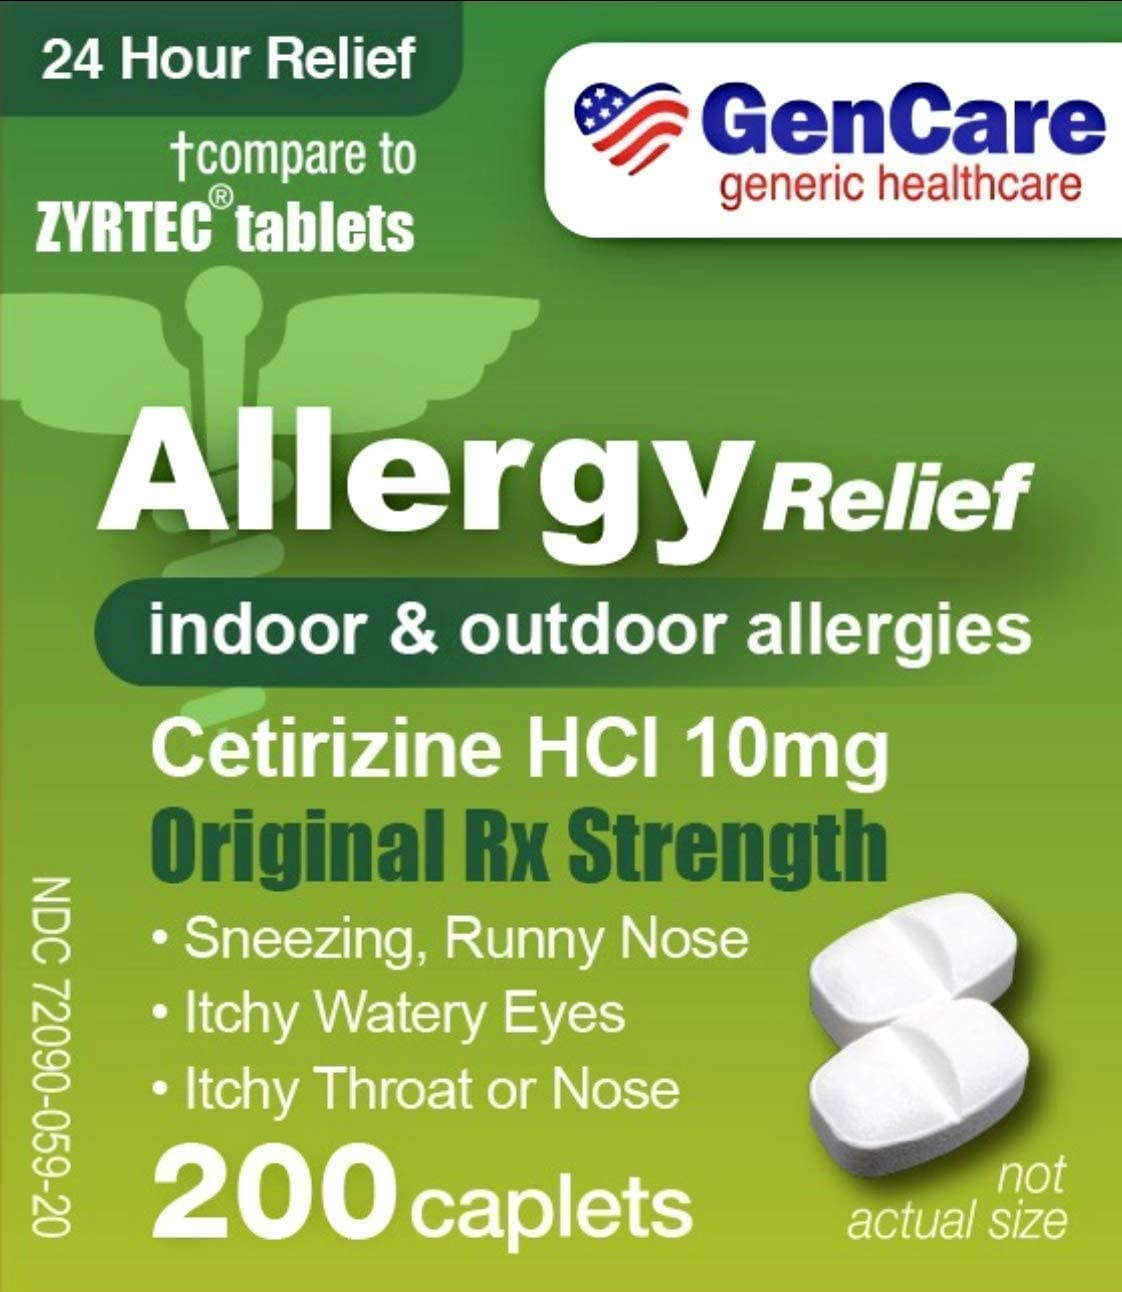 GenCare - Cetirizine HCL 10 mg (200 Count) | 24 Hour Allergy Relief Pills | Best Value Generic OTC Allergy Medication | Antihistamine for Sneezing, Runny Nose & Itchy Eyes | Generic Zyrtec